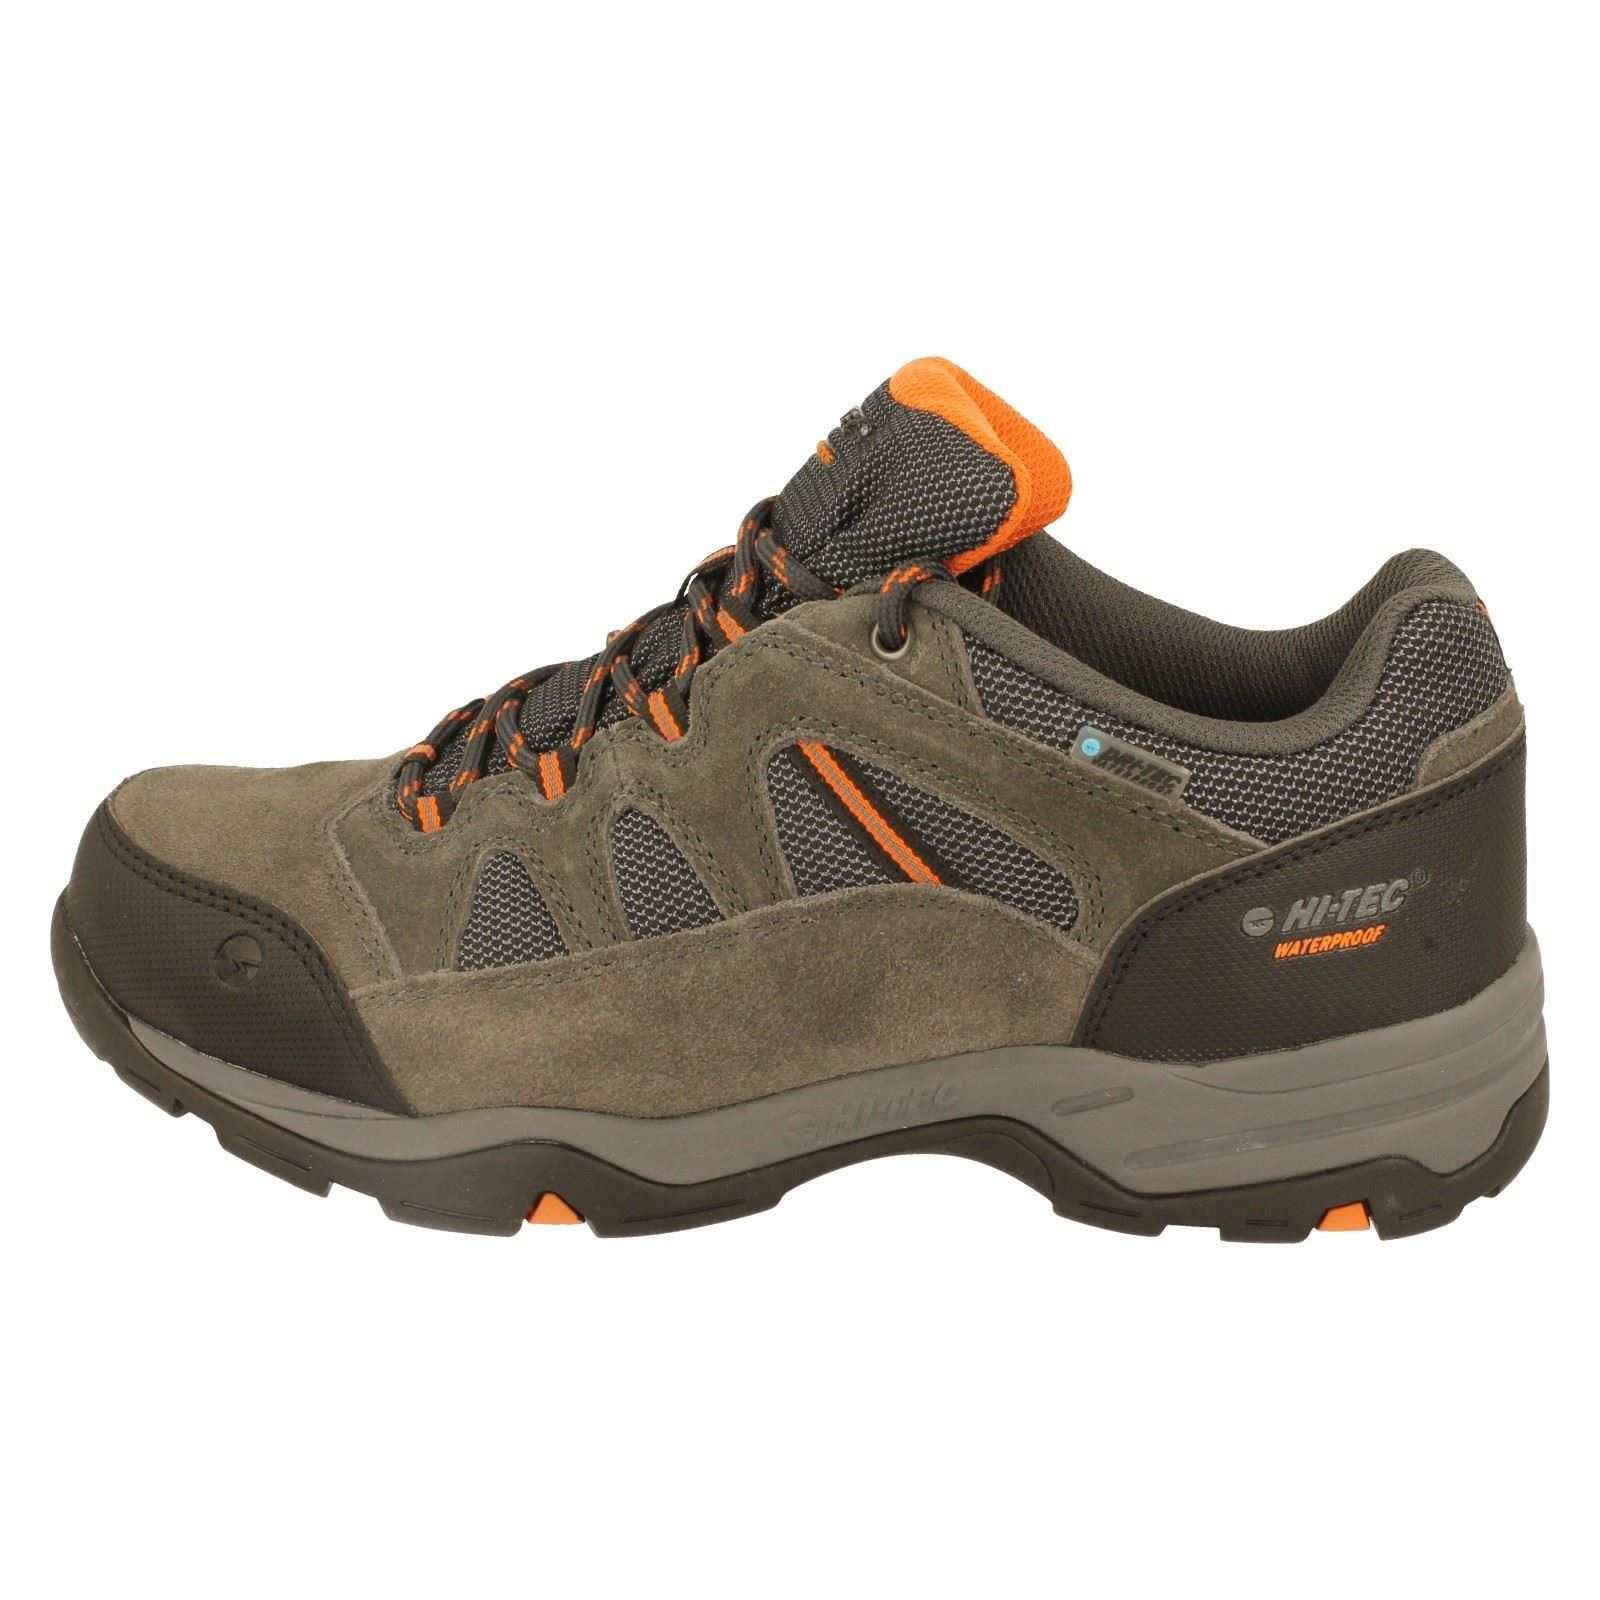 Mens Hi-Tec Walking Shoes Label -W Bandera II Low WP -W Label eaebfe